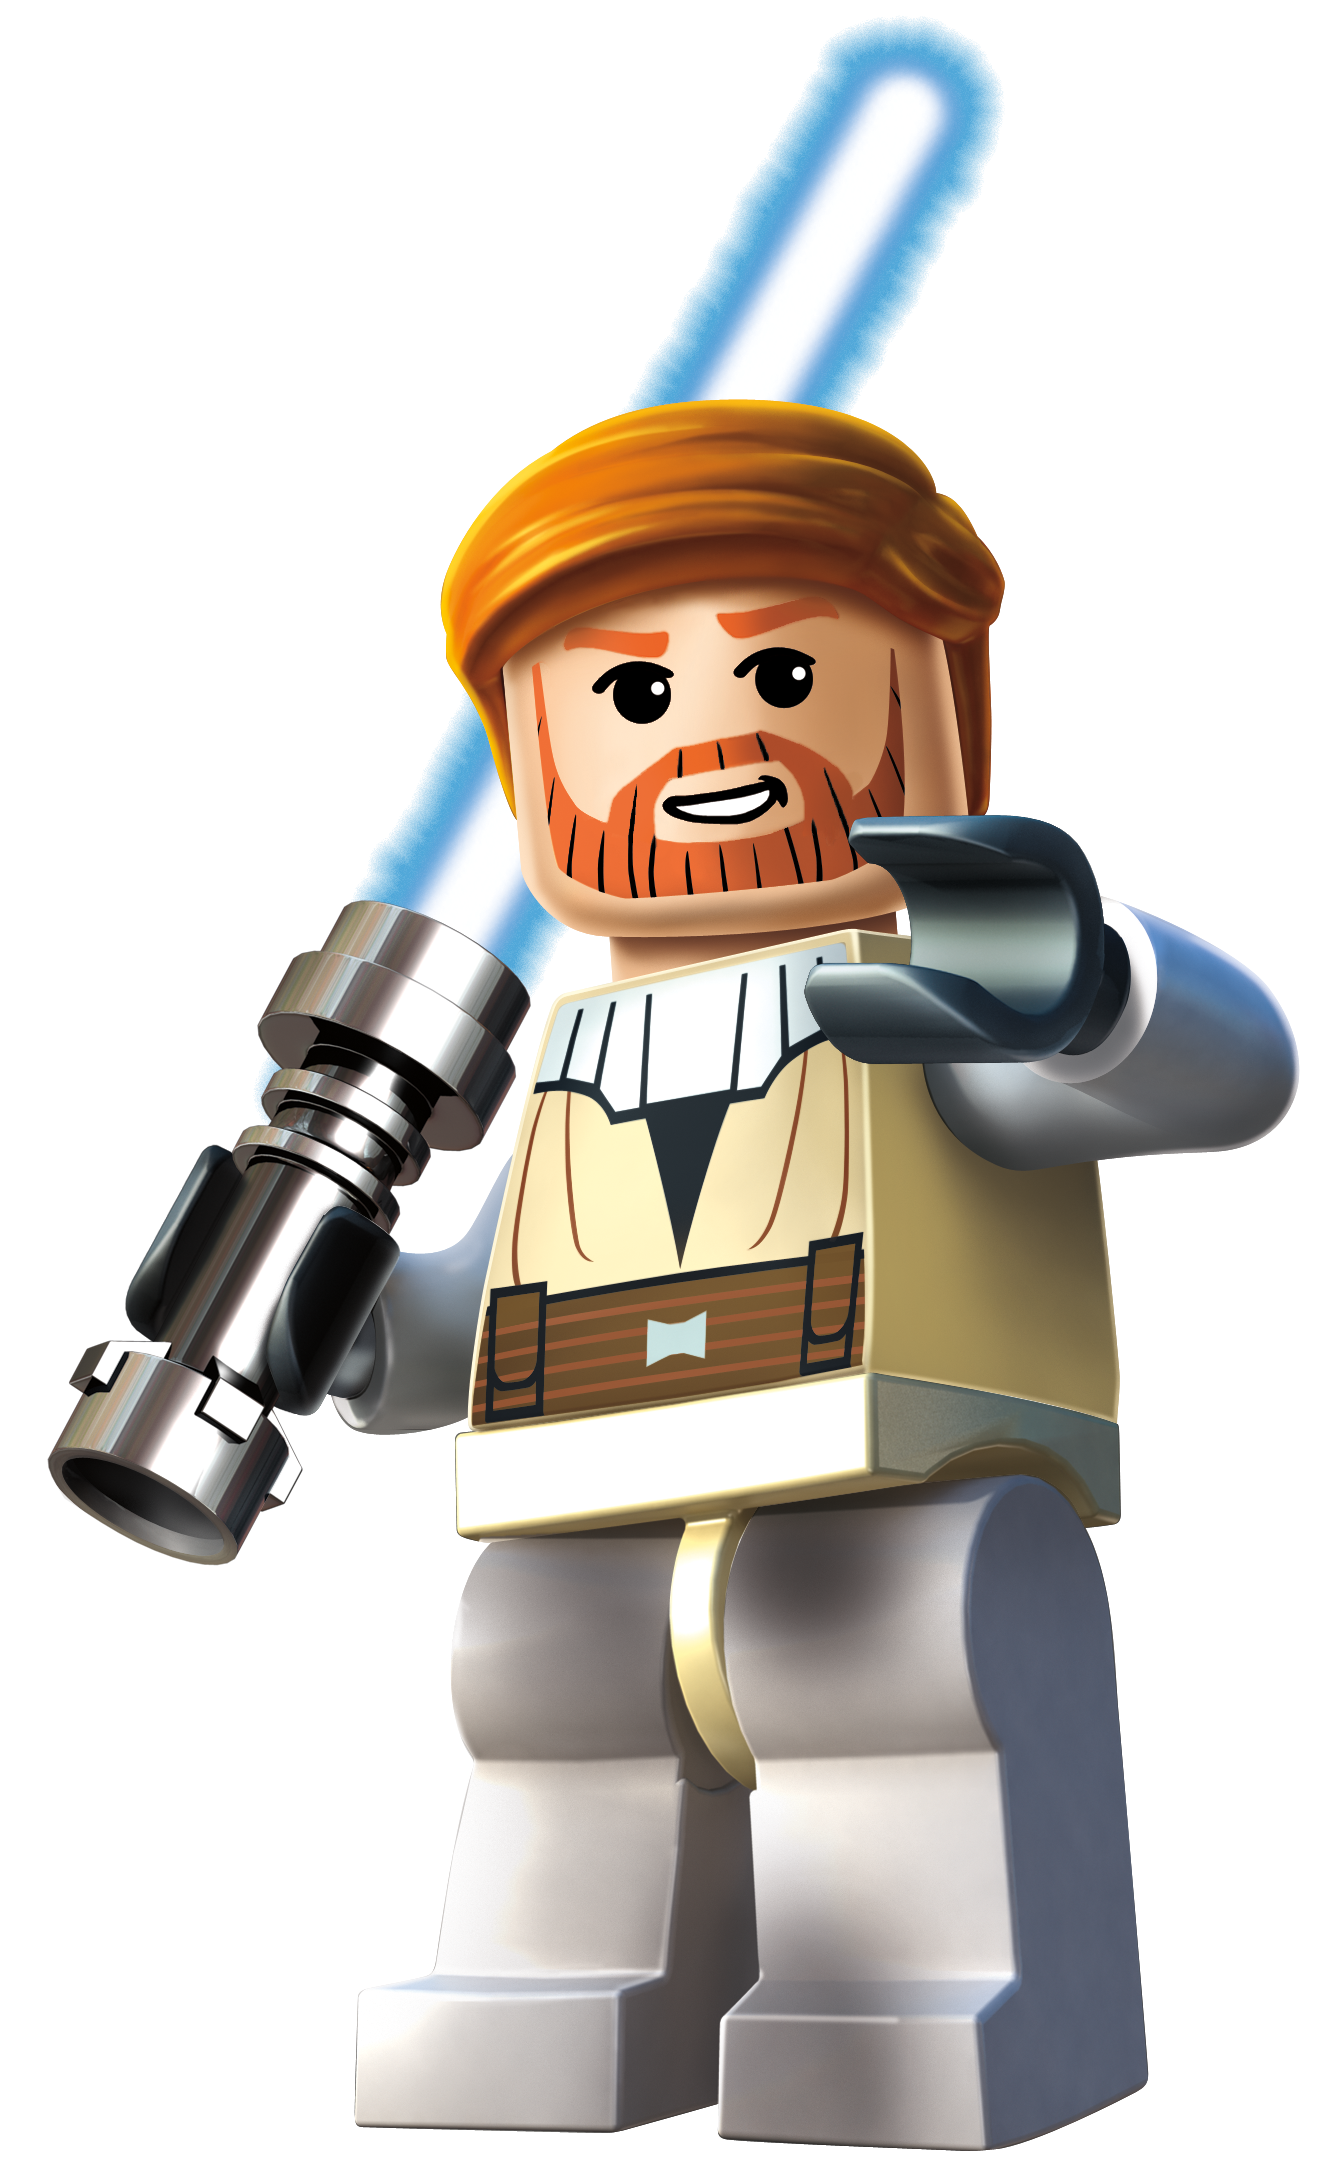 Starwars clipart person lego. Star wars characters google